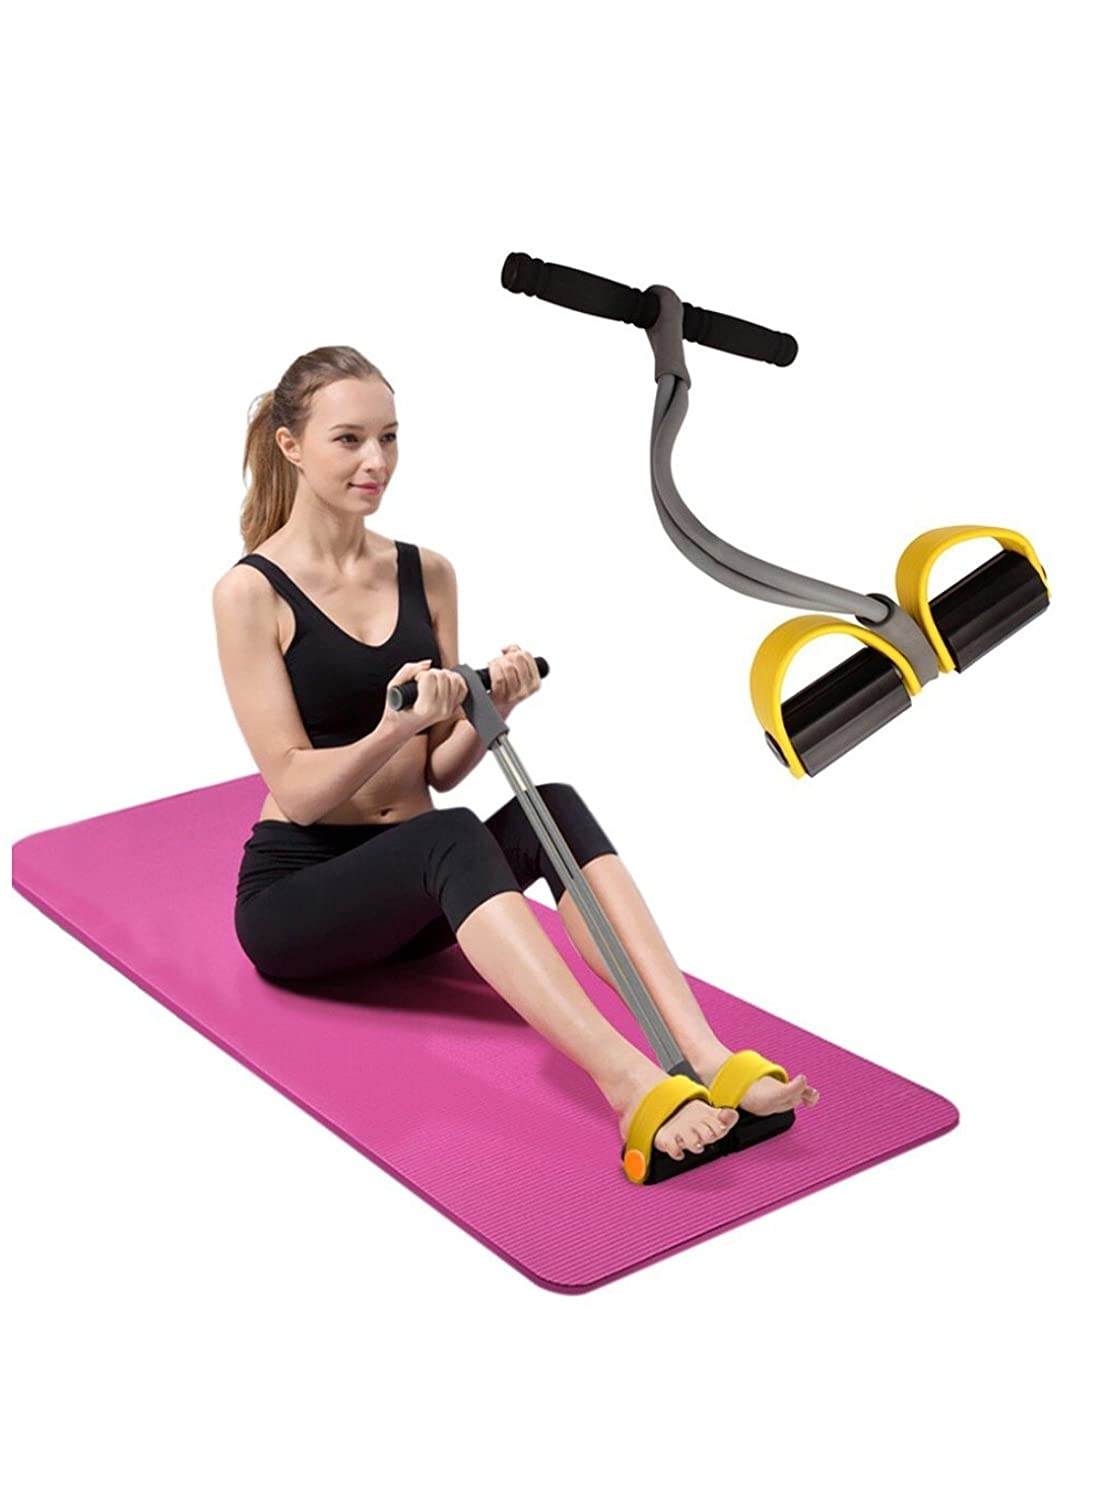 ZZ ZONEX Waist Reducer Exerciser Body Shaper Trimmer (Best for Reducing Your Waistline and Burn Off Extra Calories)